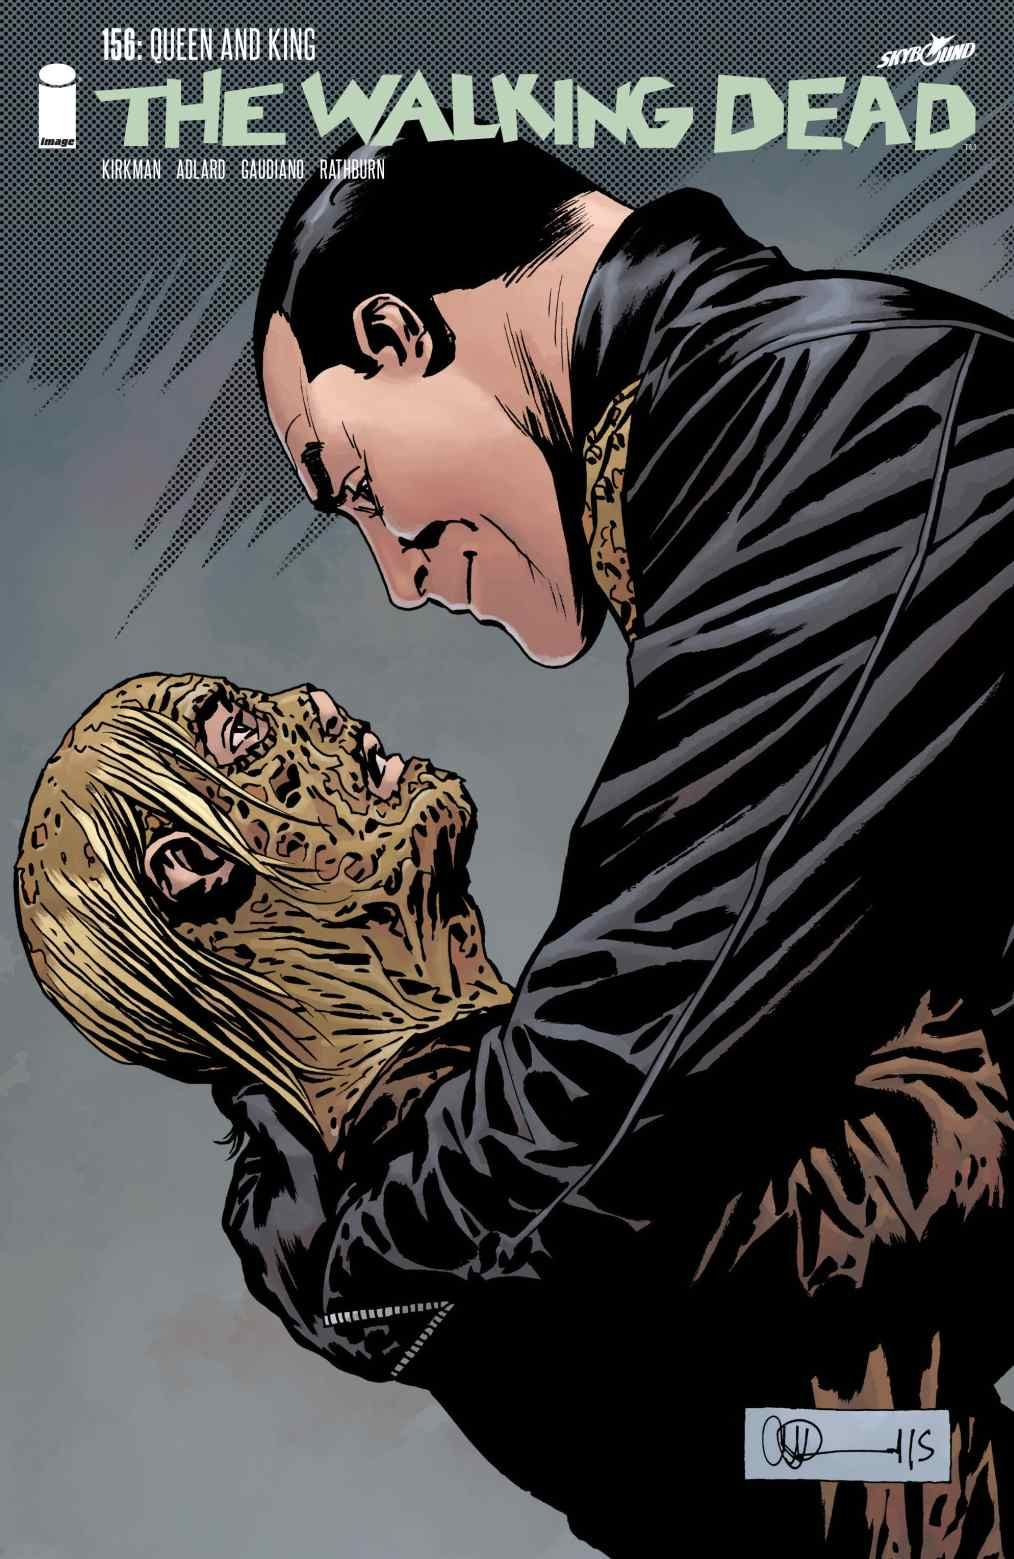 Read Comics Online Free The Walking Dead Chapter 156 Page 1